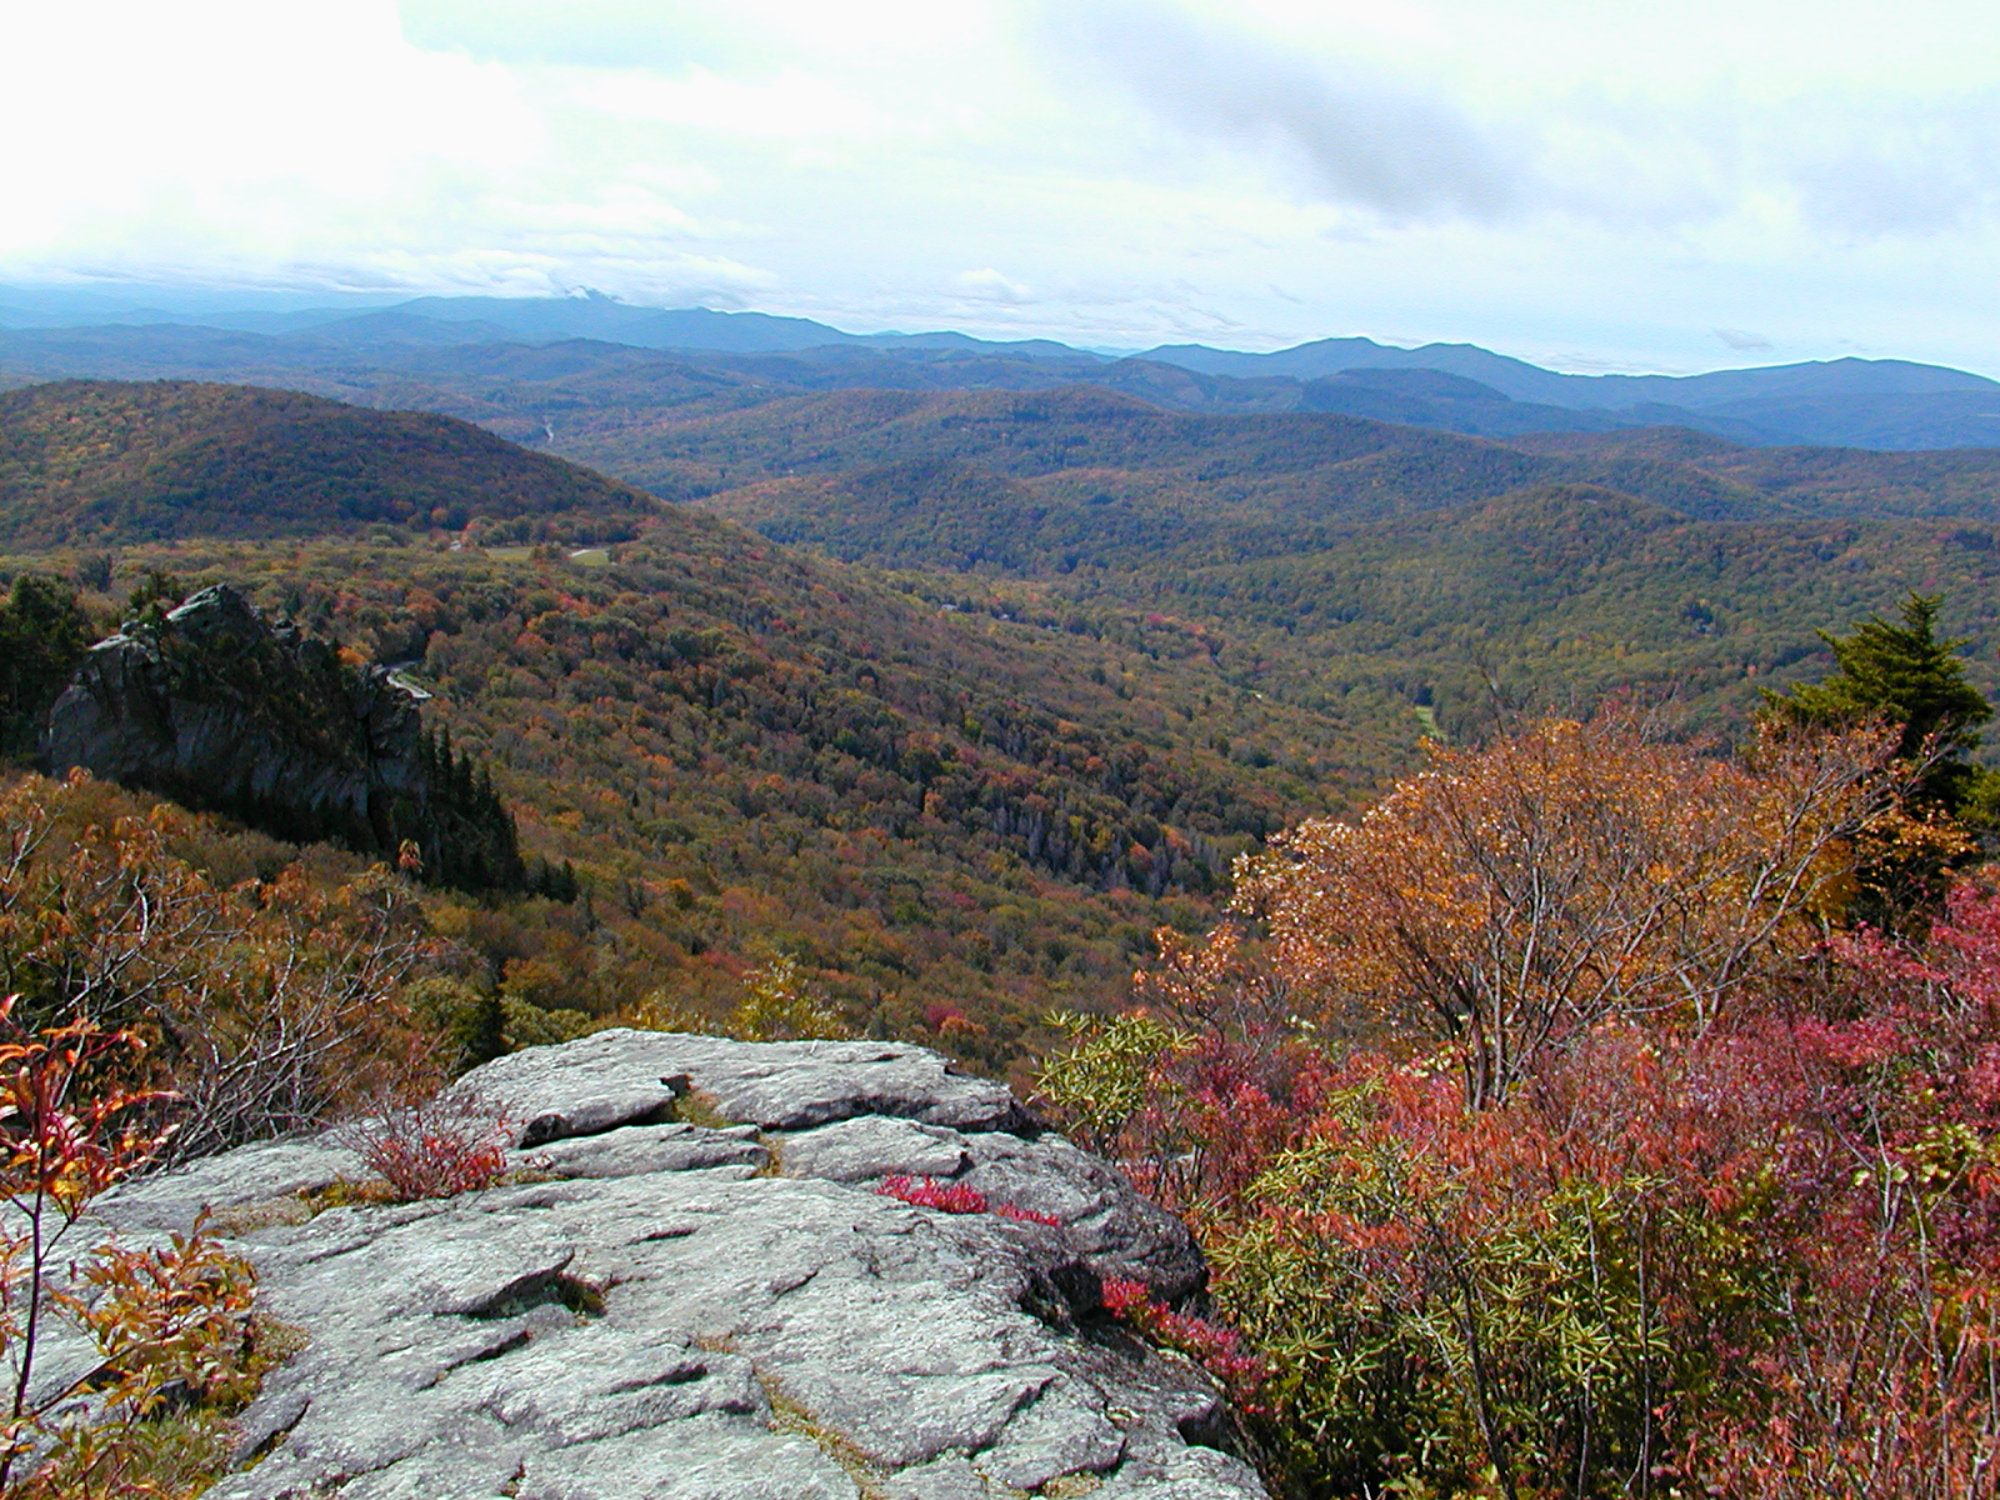 View of tree-covered mountains from a rocky outcropping